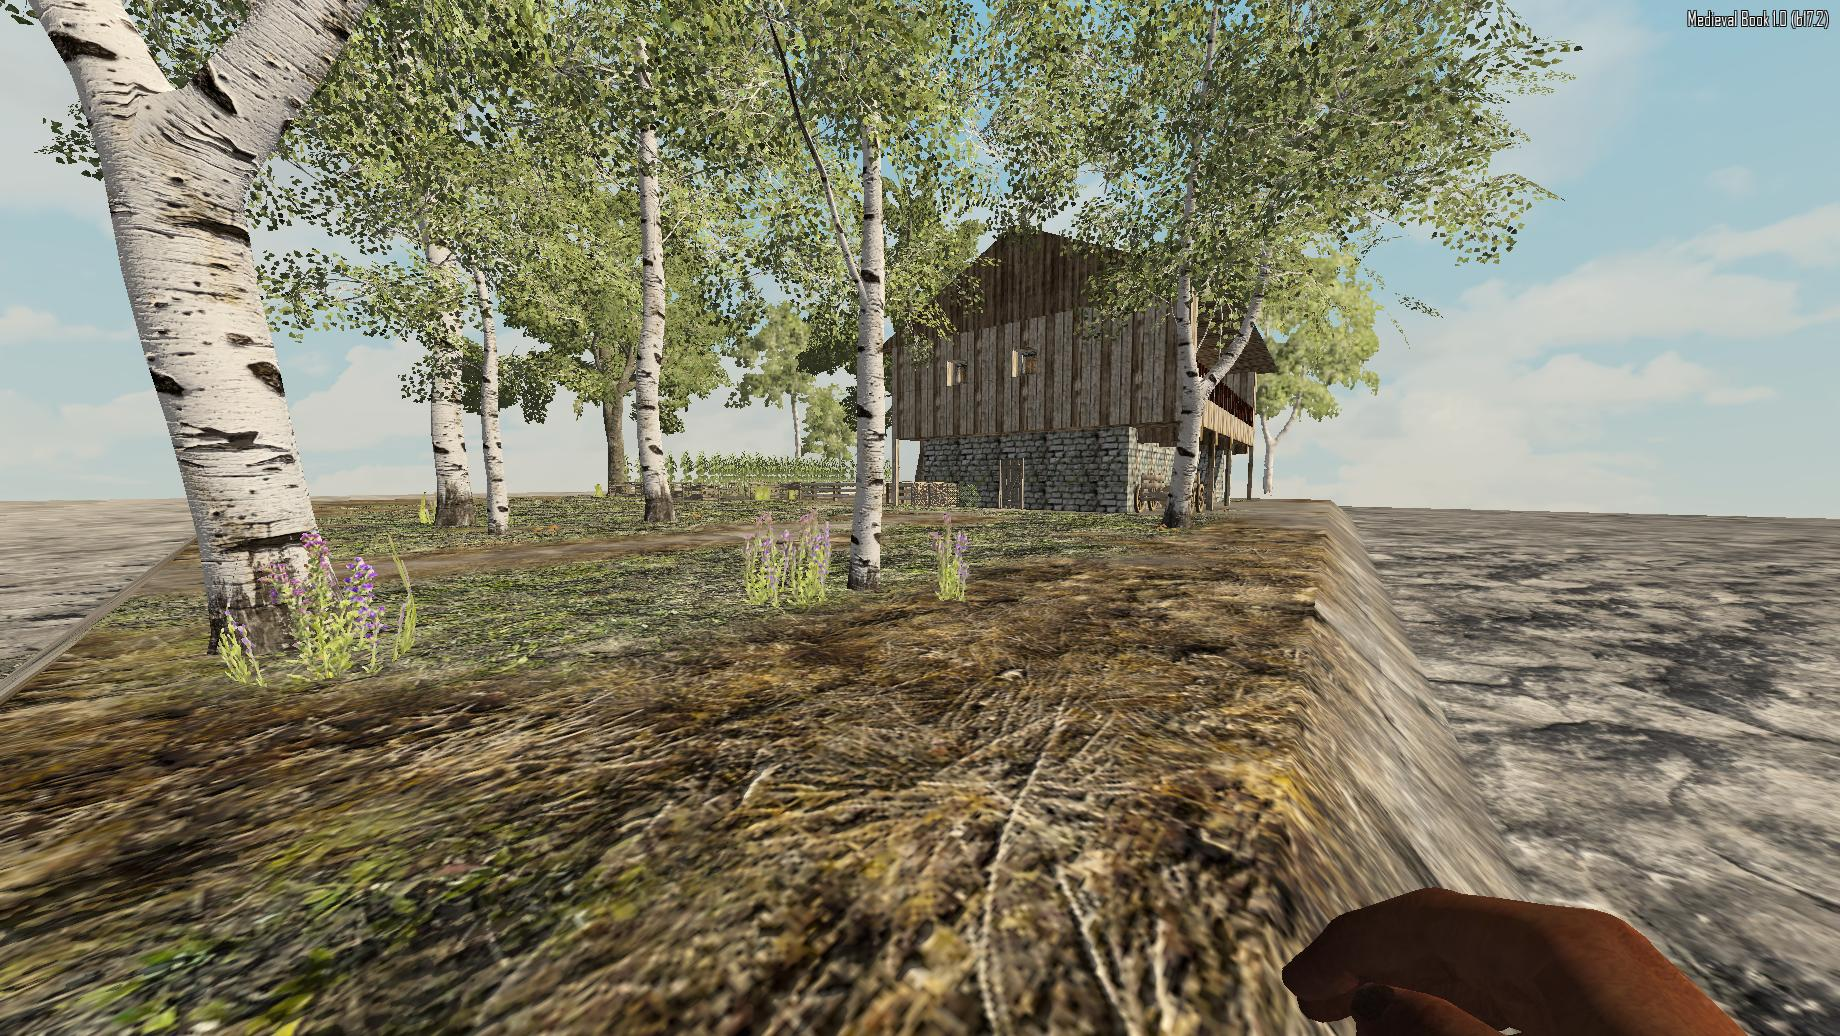 7 Days to Die 'Medieval Mod' custom buildings.